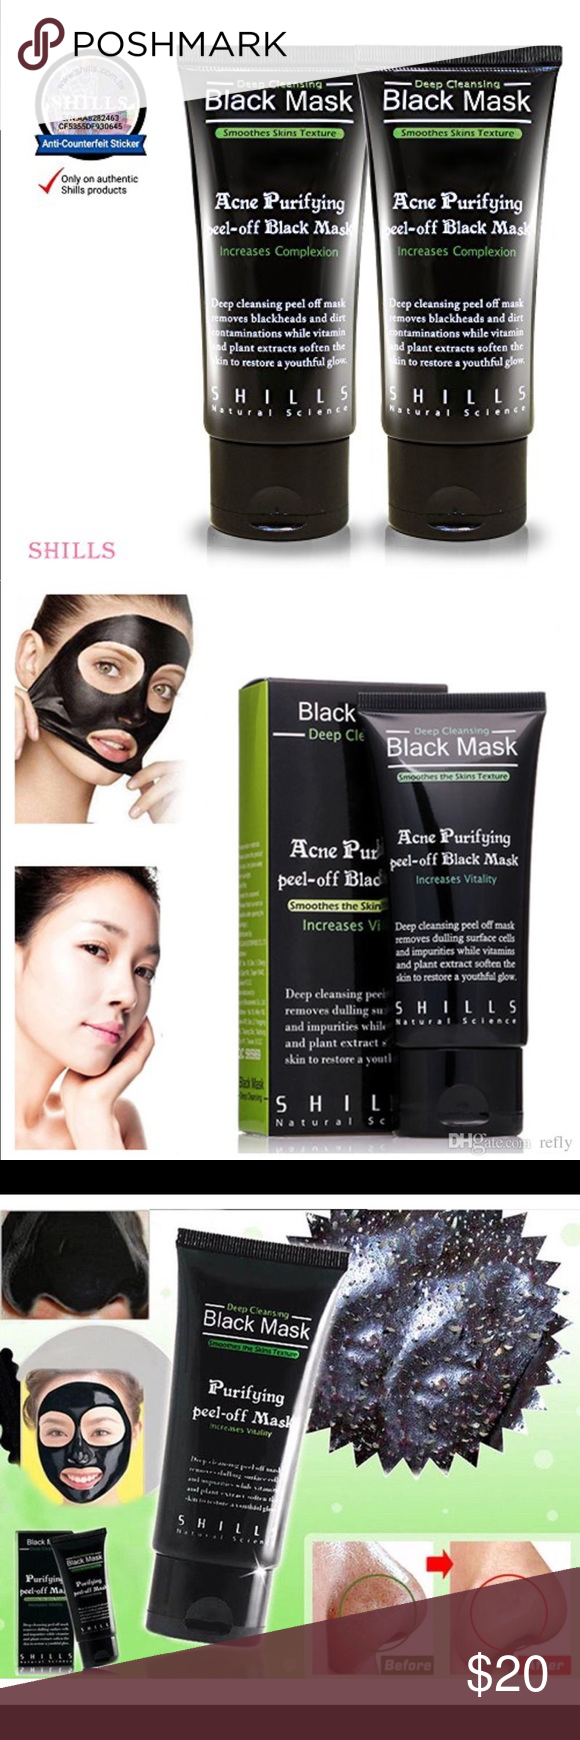 Shills Purifying Black Mask Peel Of Deep Cleansing Off 2